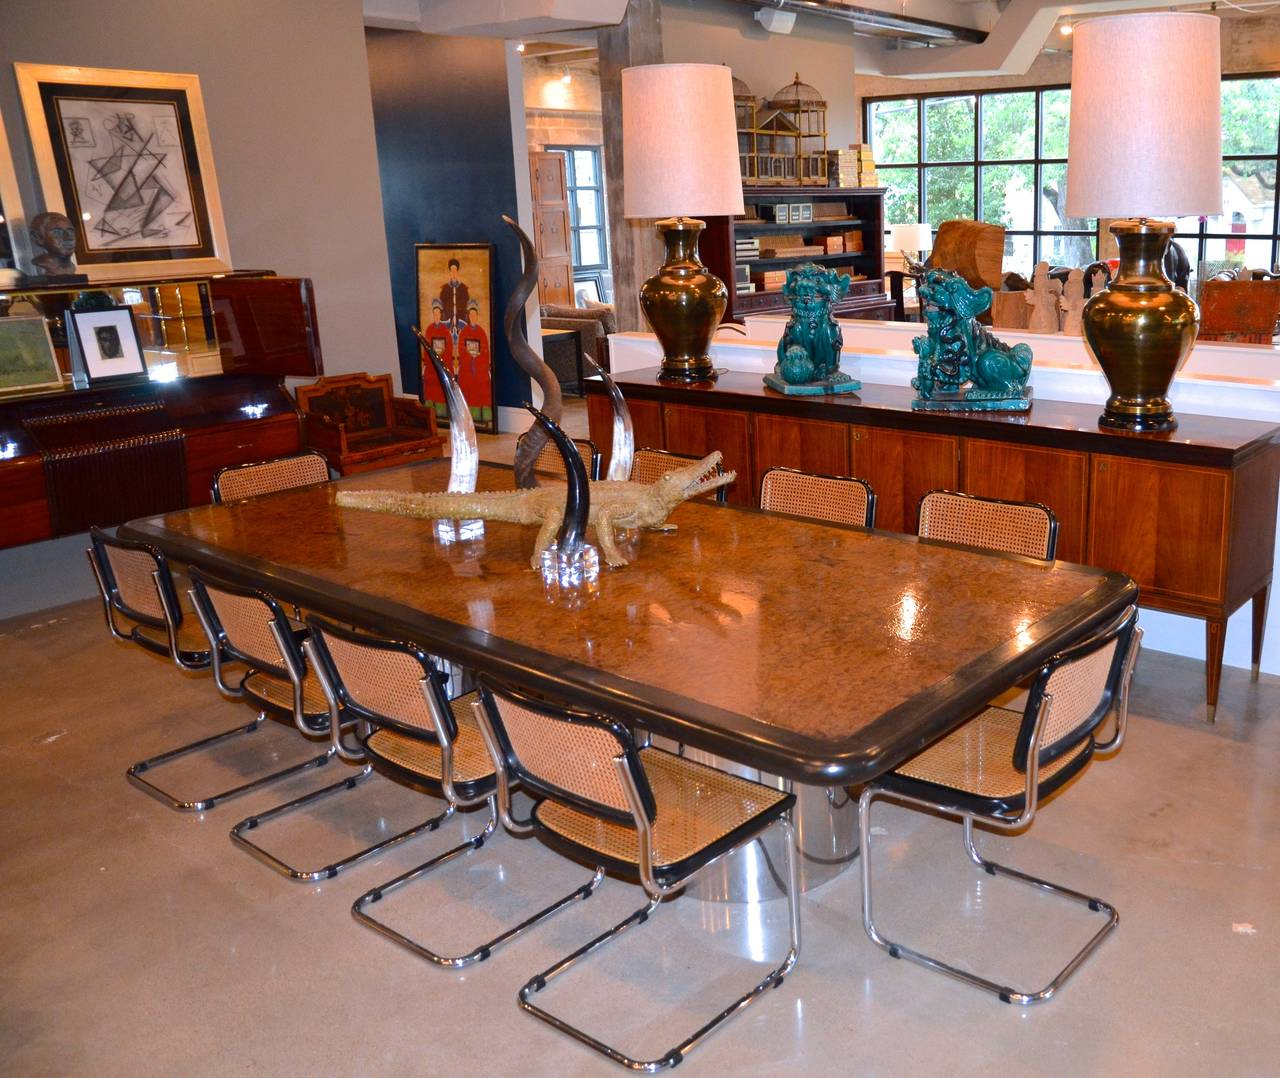 Mid Century Modern Iconic Marcel Breuer Cesca Chairs In Black For Sale